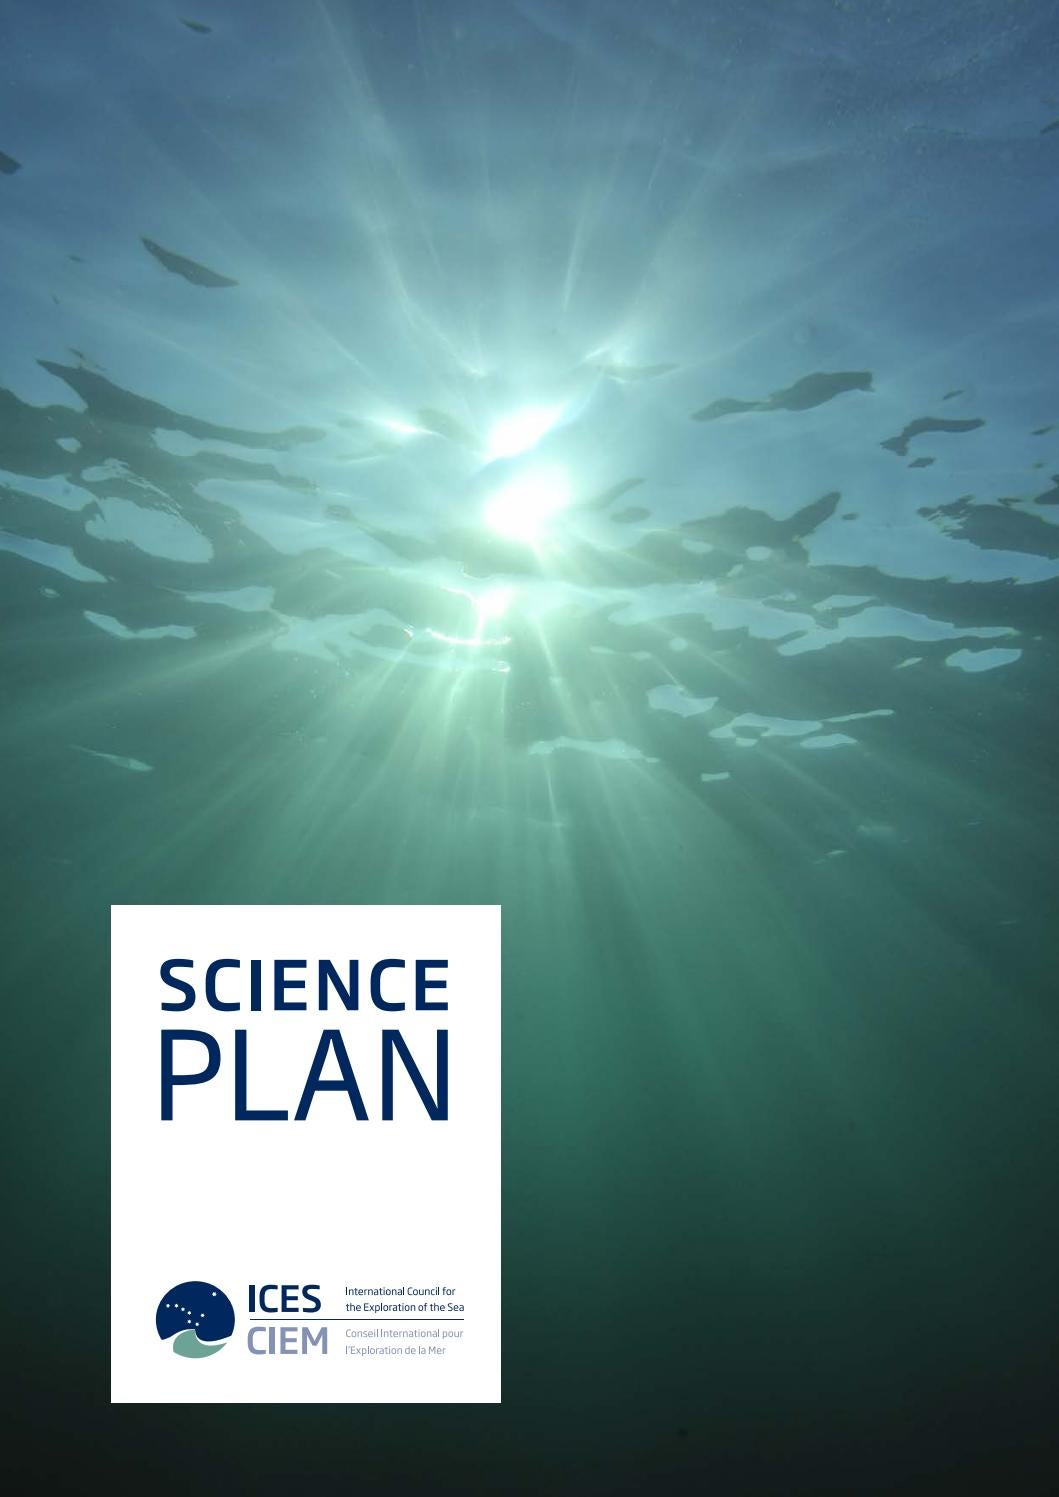 Ices Science Plan By Ices Issuu